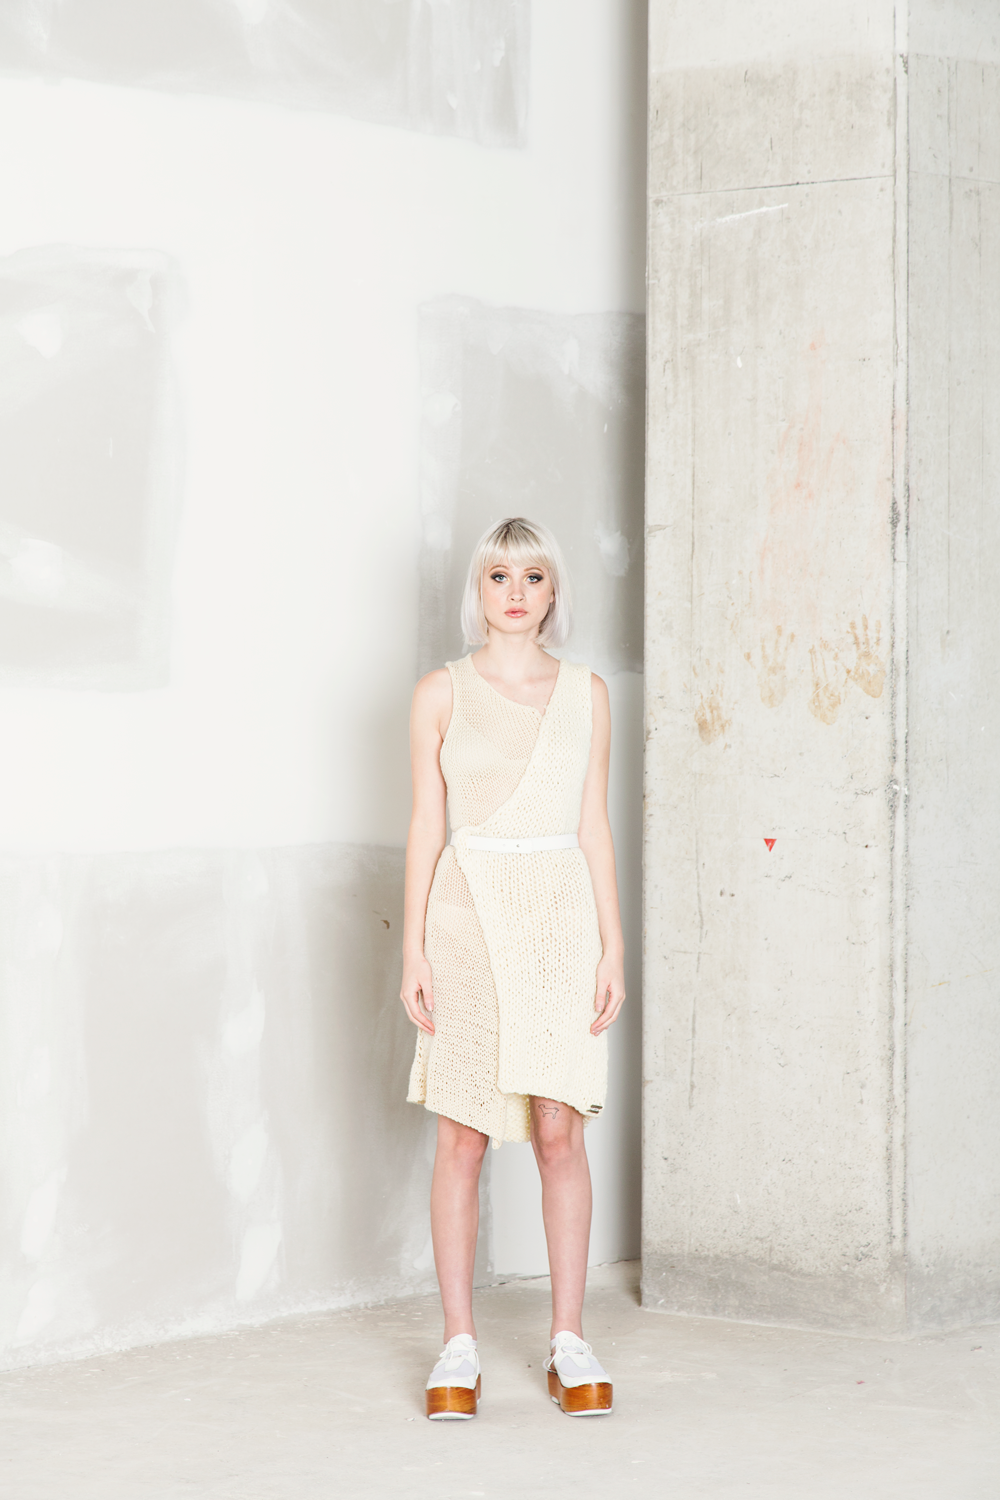 Per Materia  Hand-knitted dress double texture One size / Bamboo yarn $350.00 + Shipping